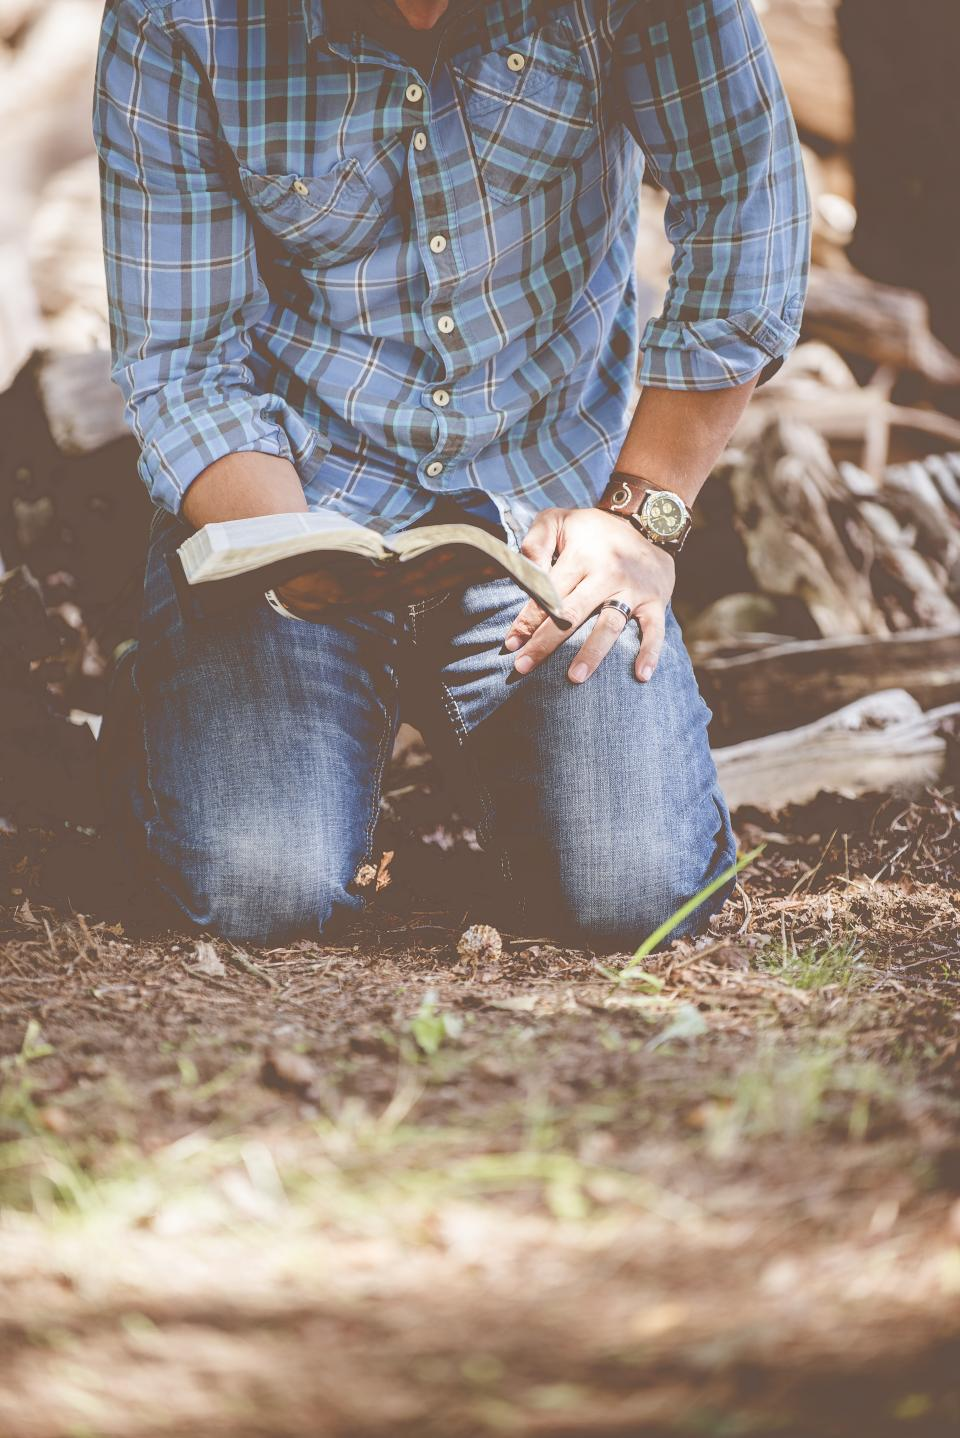 guy man male people kneel bust torso read book fashion style ground dirt grass wood timber still bokeh